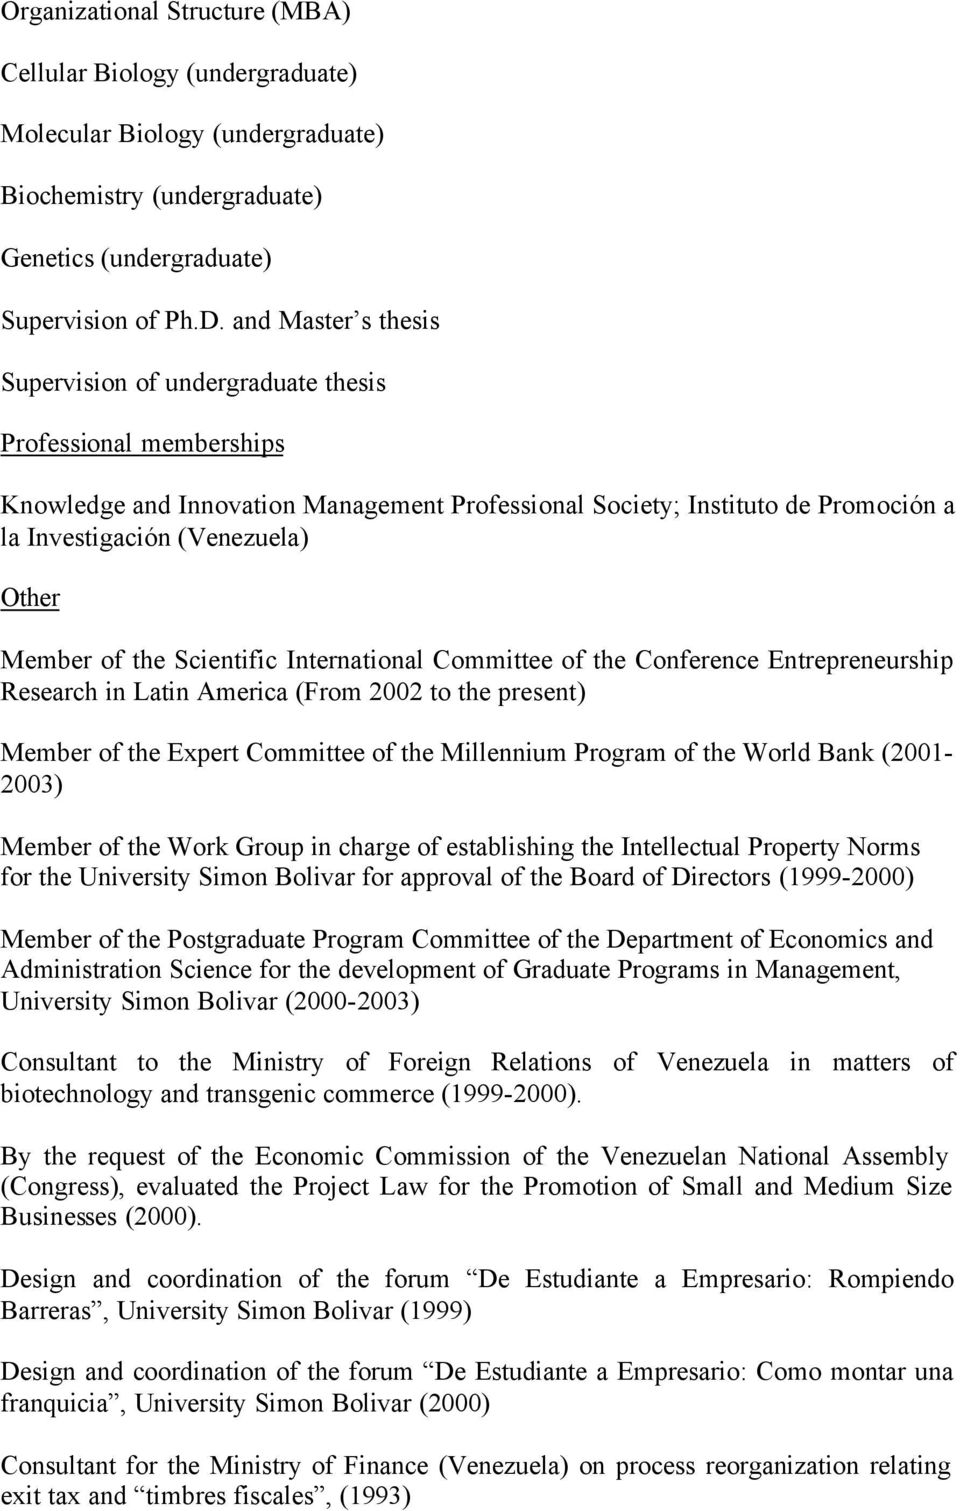 Member of the Scientific International Committee of the Conference Entrepreneurship Research in Latin America (From 2002 to the present) Member of the Expert Committee of the Millennium Program of